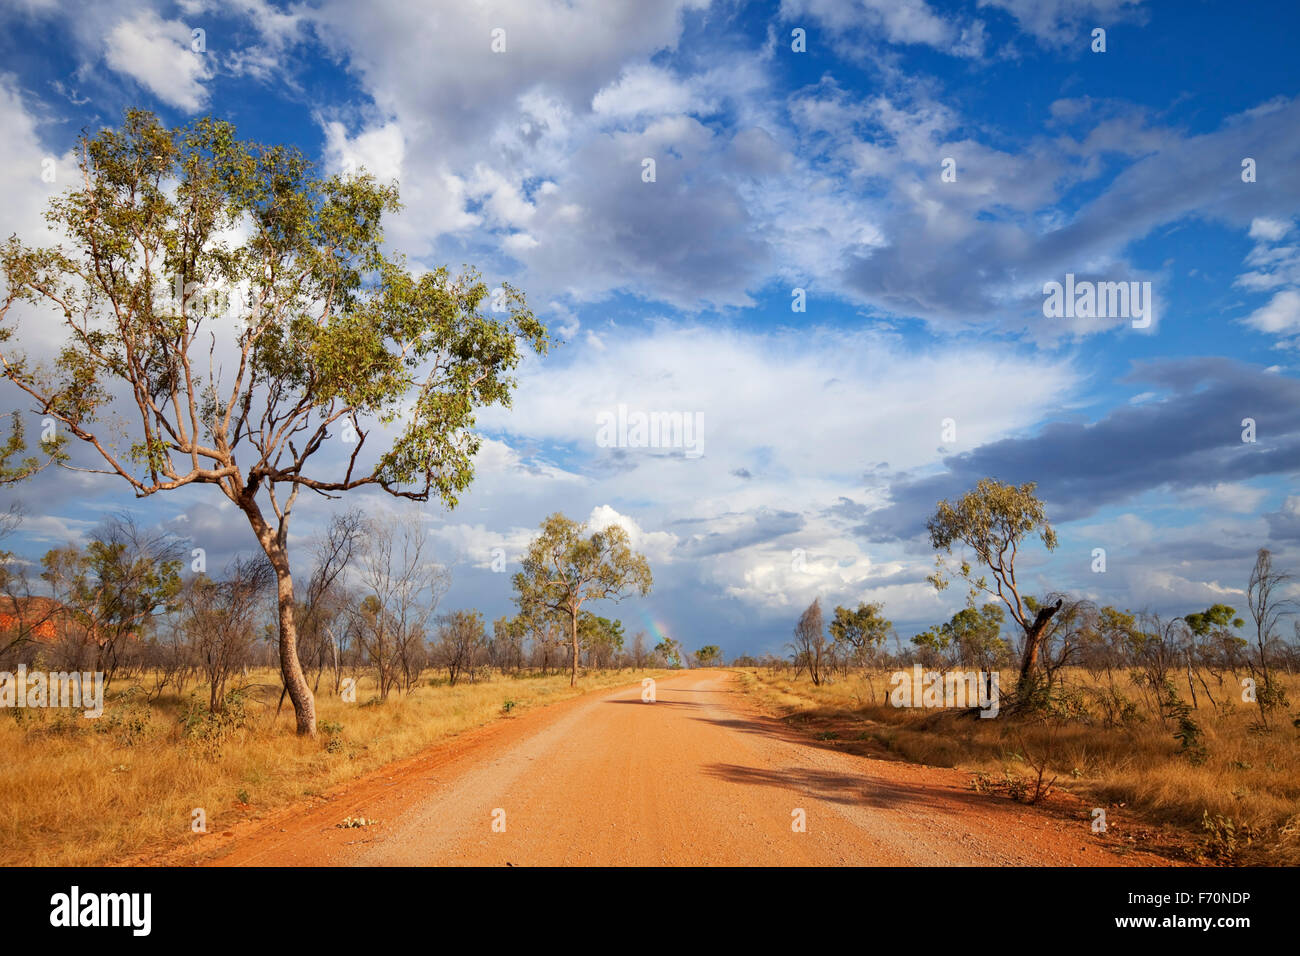 An unsealed road through the Australian outback with a rainbow at the end of the road. Photographed in the Purnululu - Stock Image